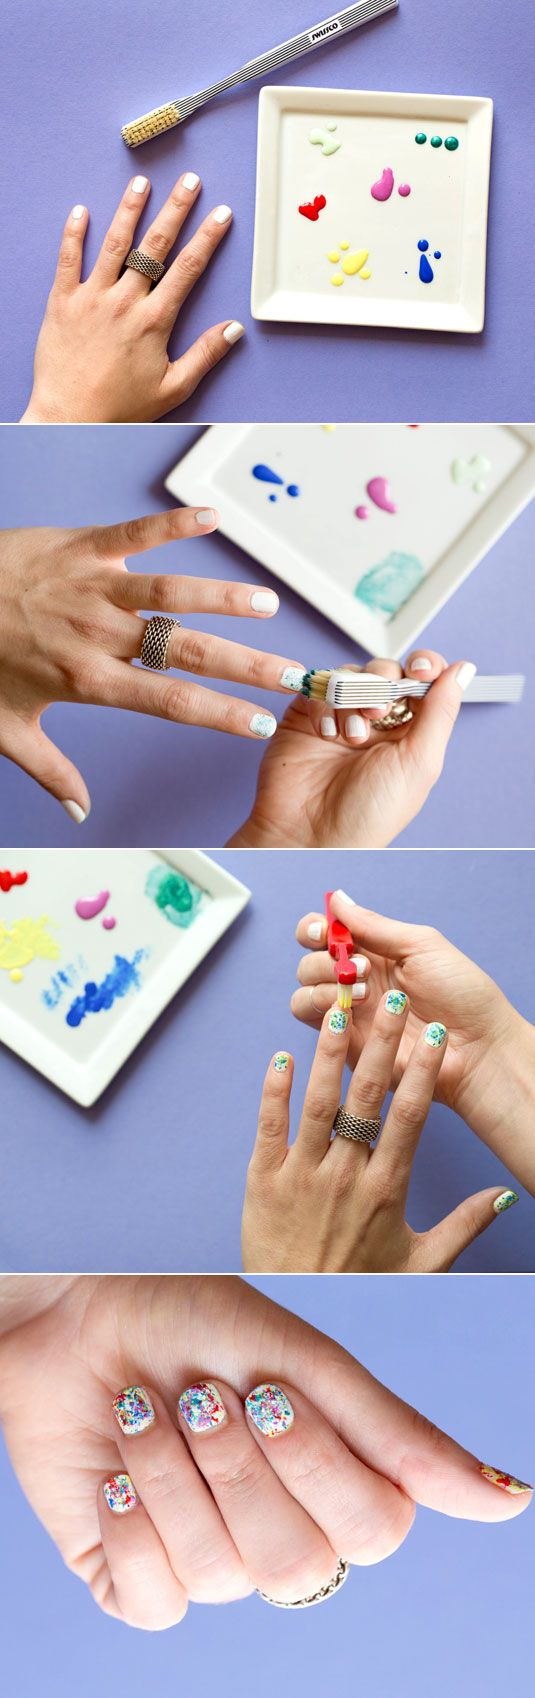 20 best Dental Nail Design images on Pinterest | Teeth, Tooth and Dental